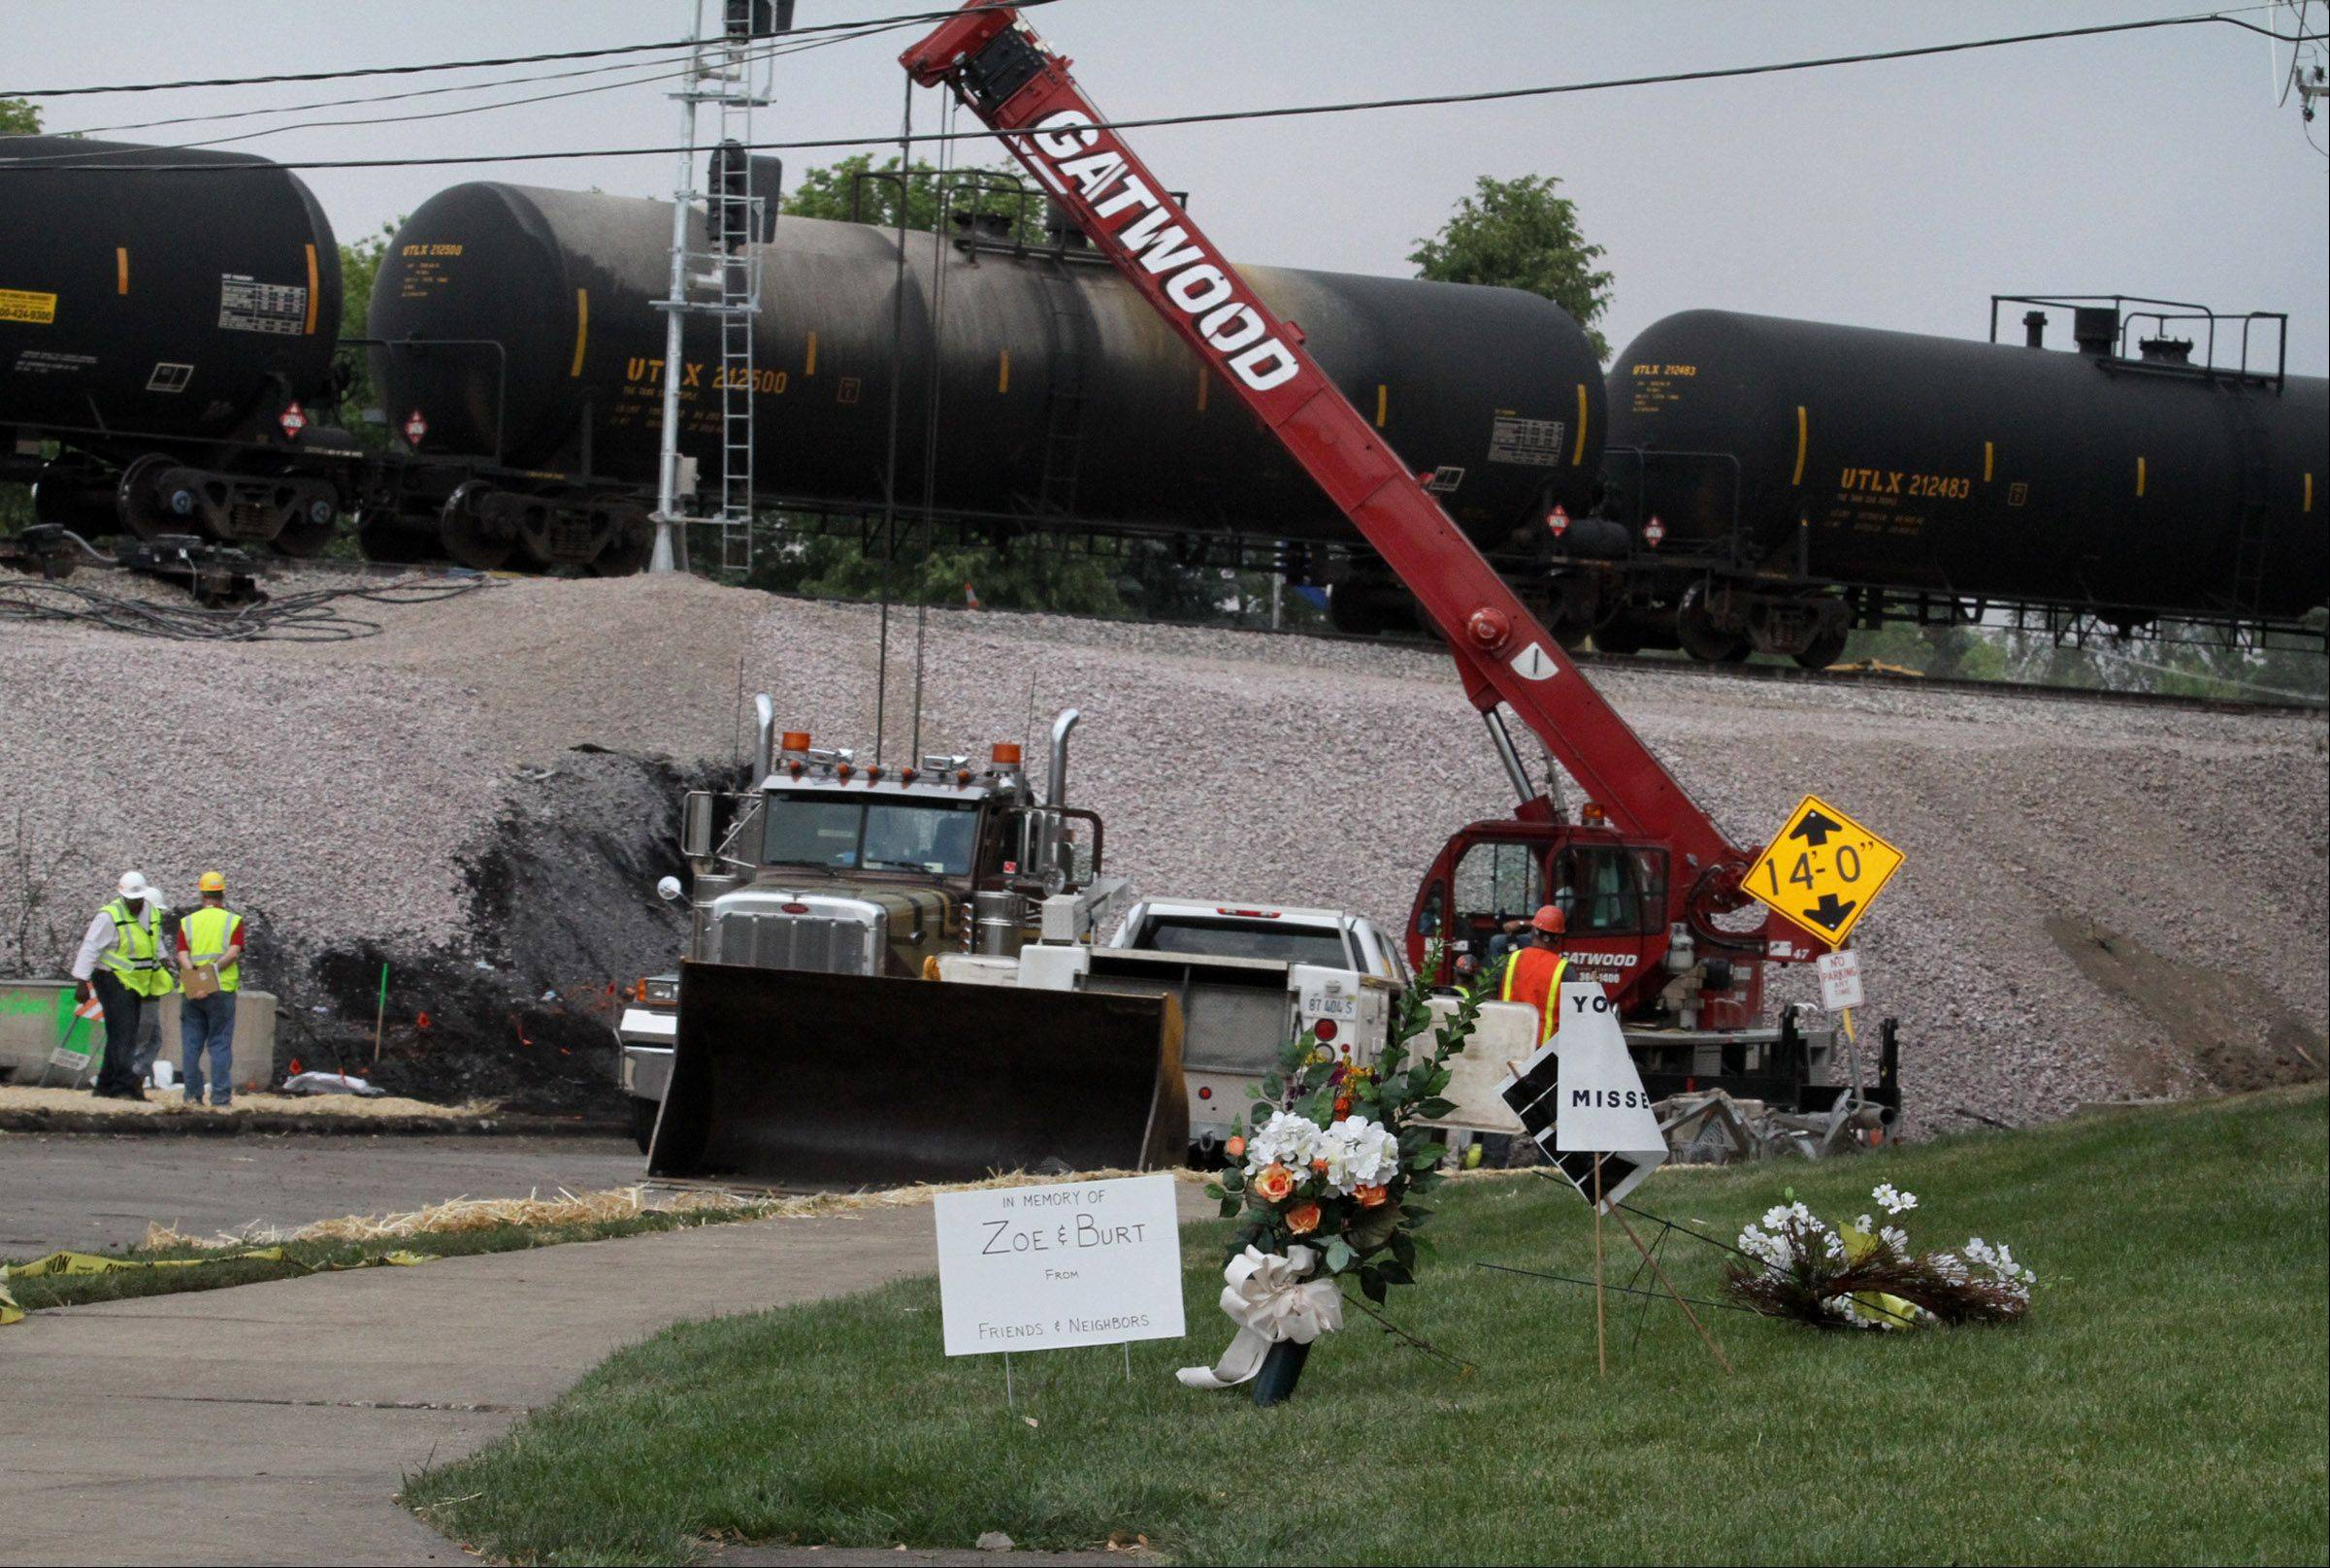 Work continued in Glenview Friday at the site of the July 4 train derailment tha